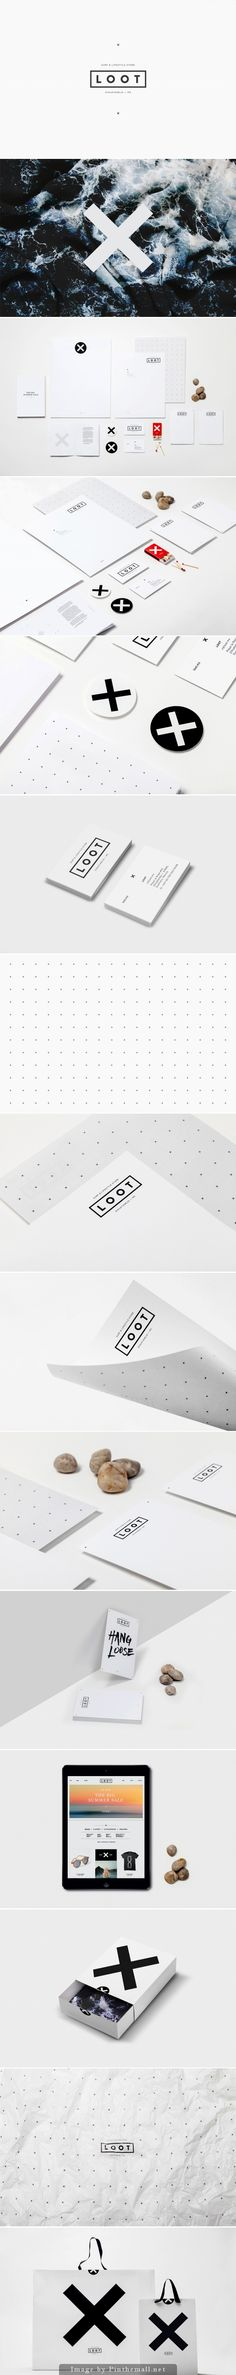 Loot branding corporate identity stationary minimal logo webdesign shopping bag wrapping paper business card sticker letterhead pattern black and white b&w graphic design